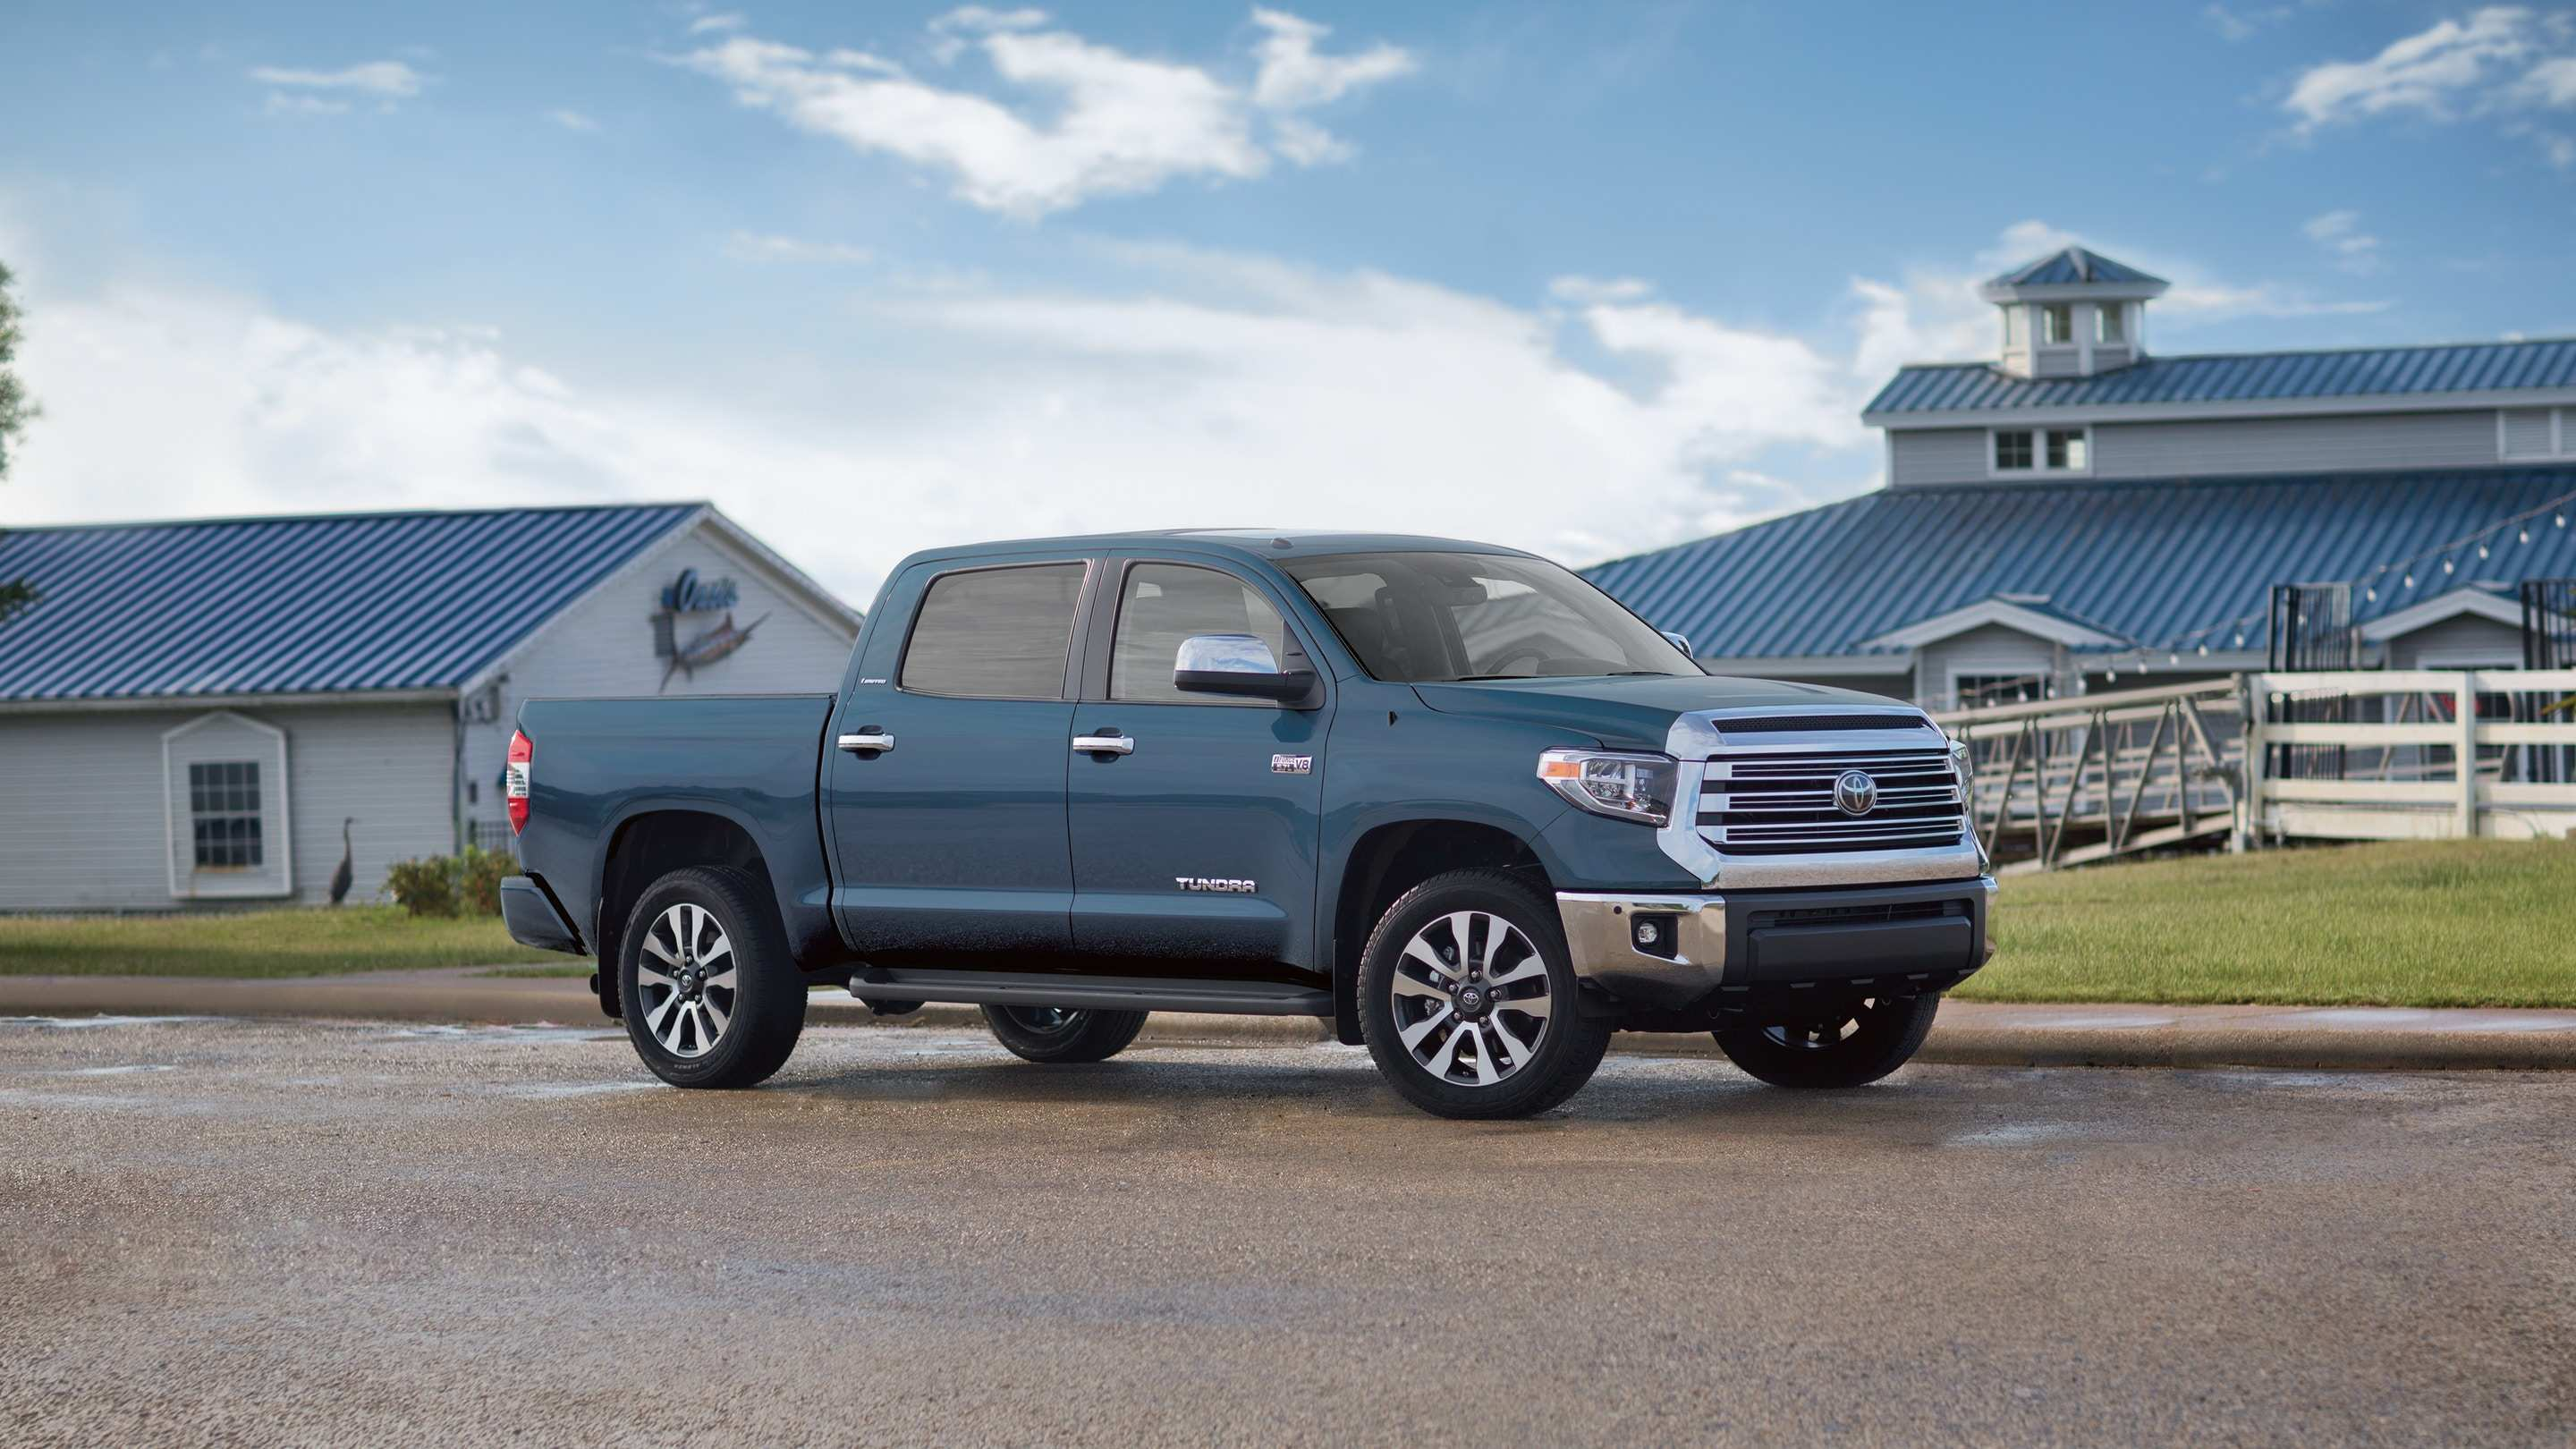 76 New 2019 Toyota Tundra Truck Price And Release Date